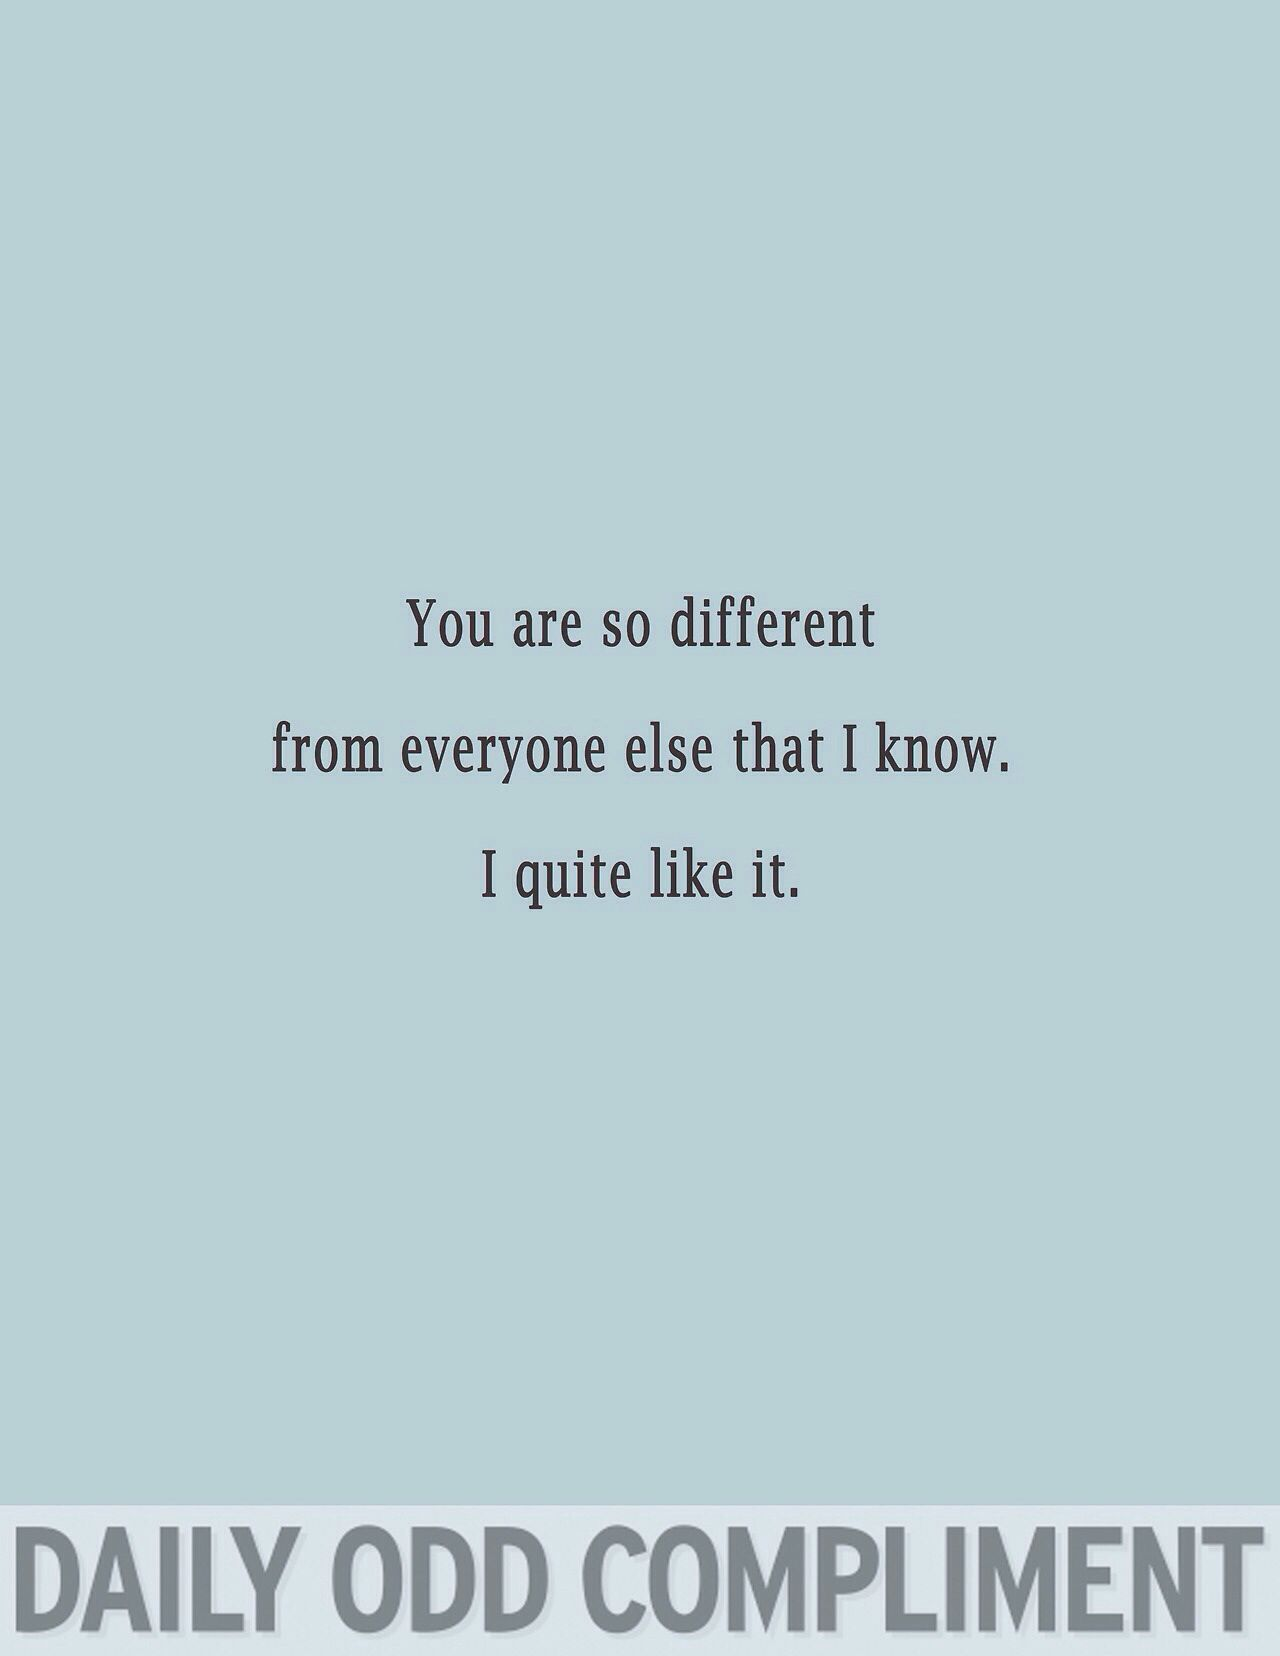 Daily odd compliment love